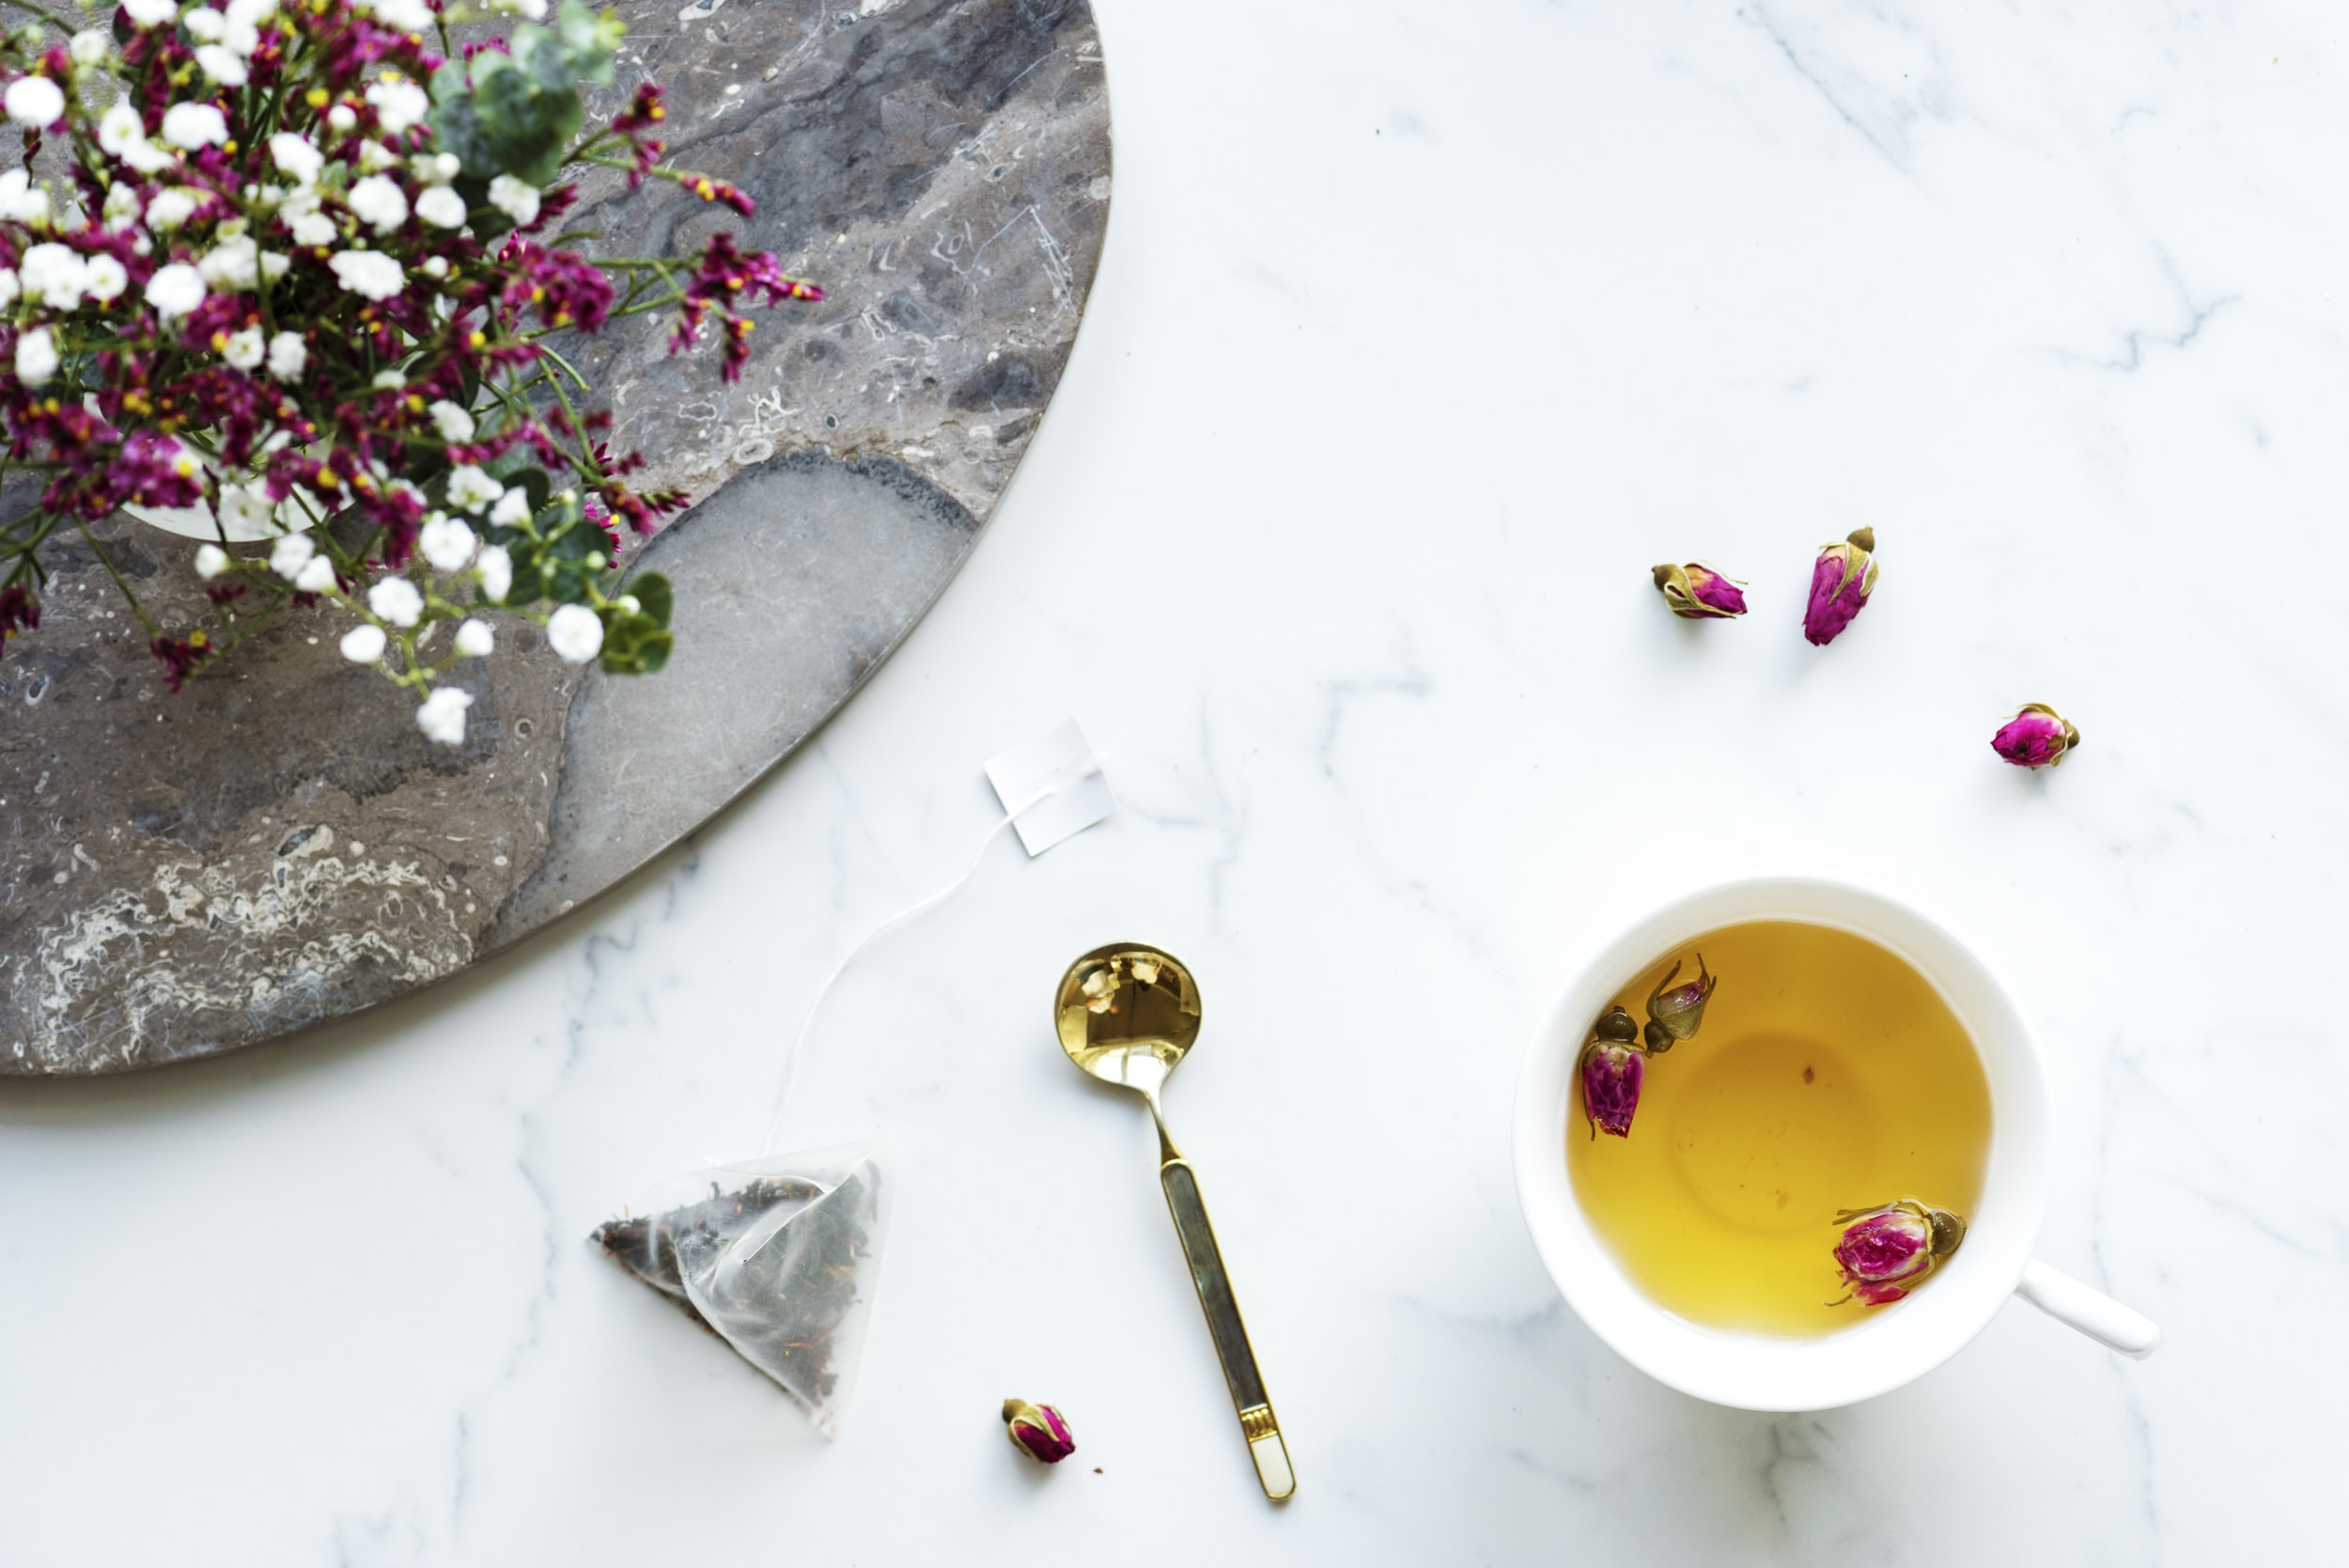 white ceramic teacup near gold-colored spoon